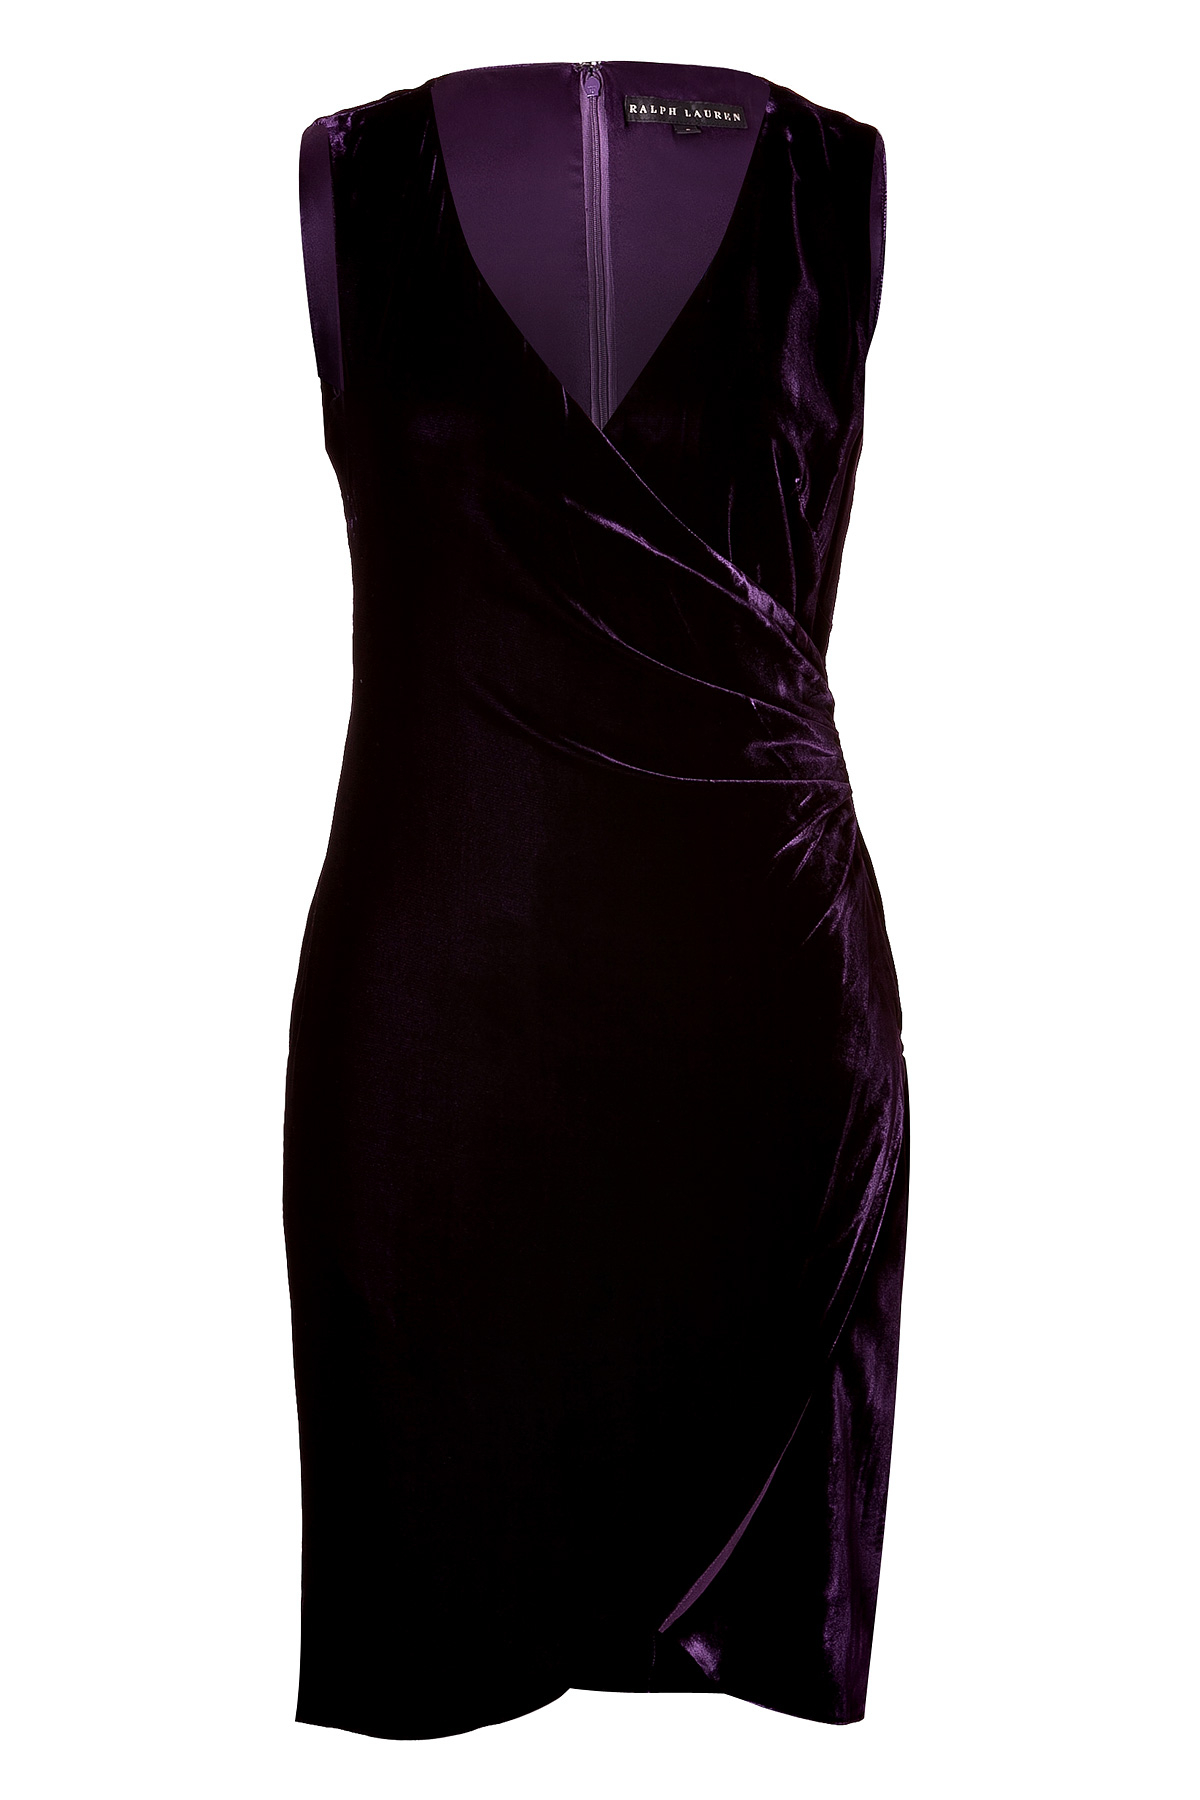 Lyst Ralph Lauren Black Label Silk Blend Velvet Dress In